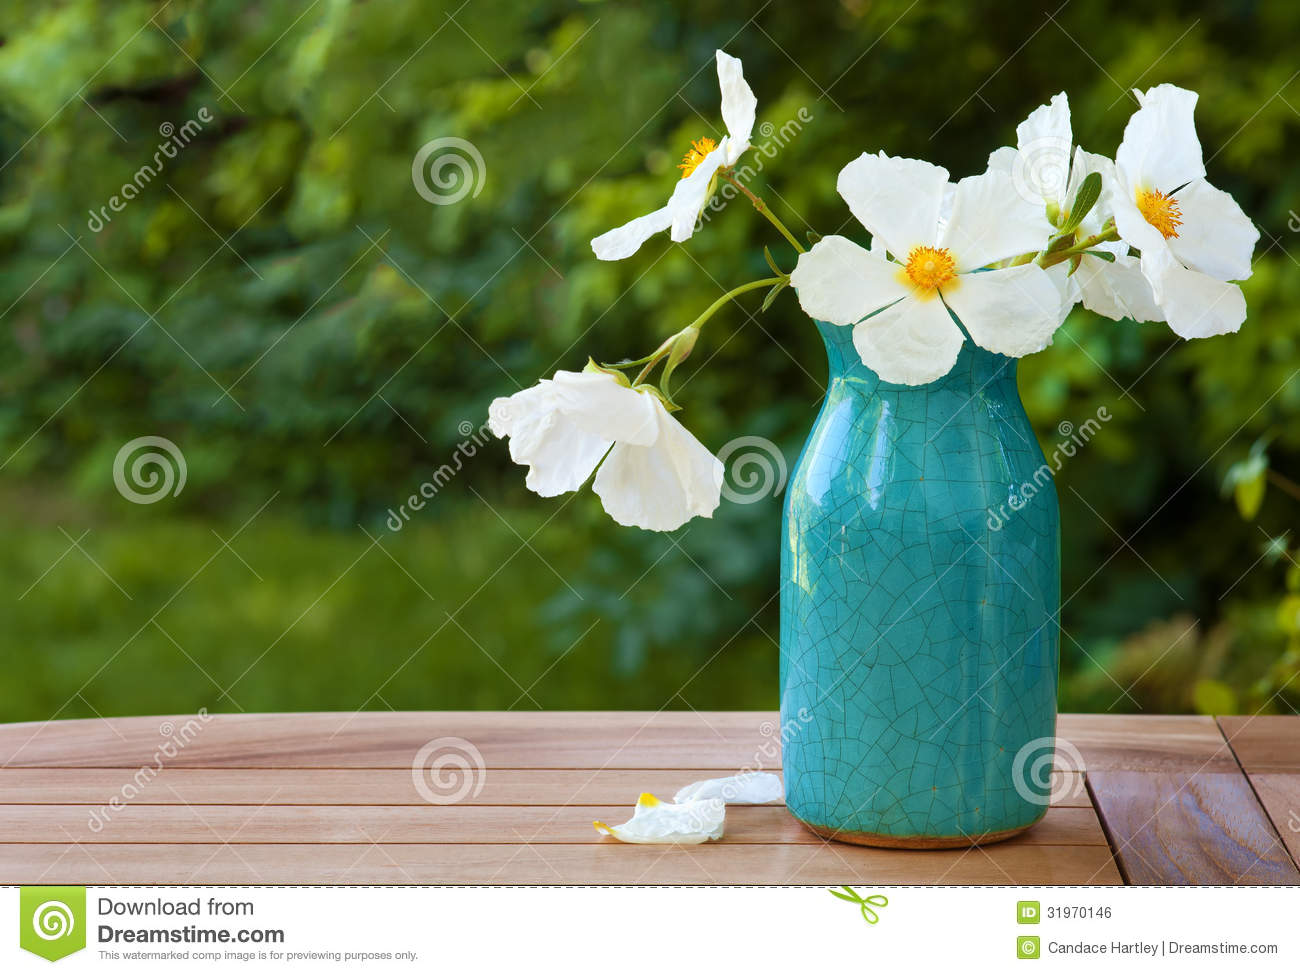 White Rock Rose Blossoms In A Blue Crazed Vase On Wooden